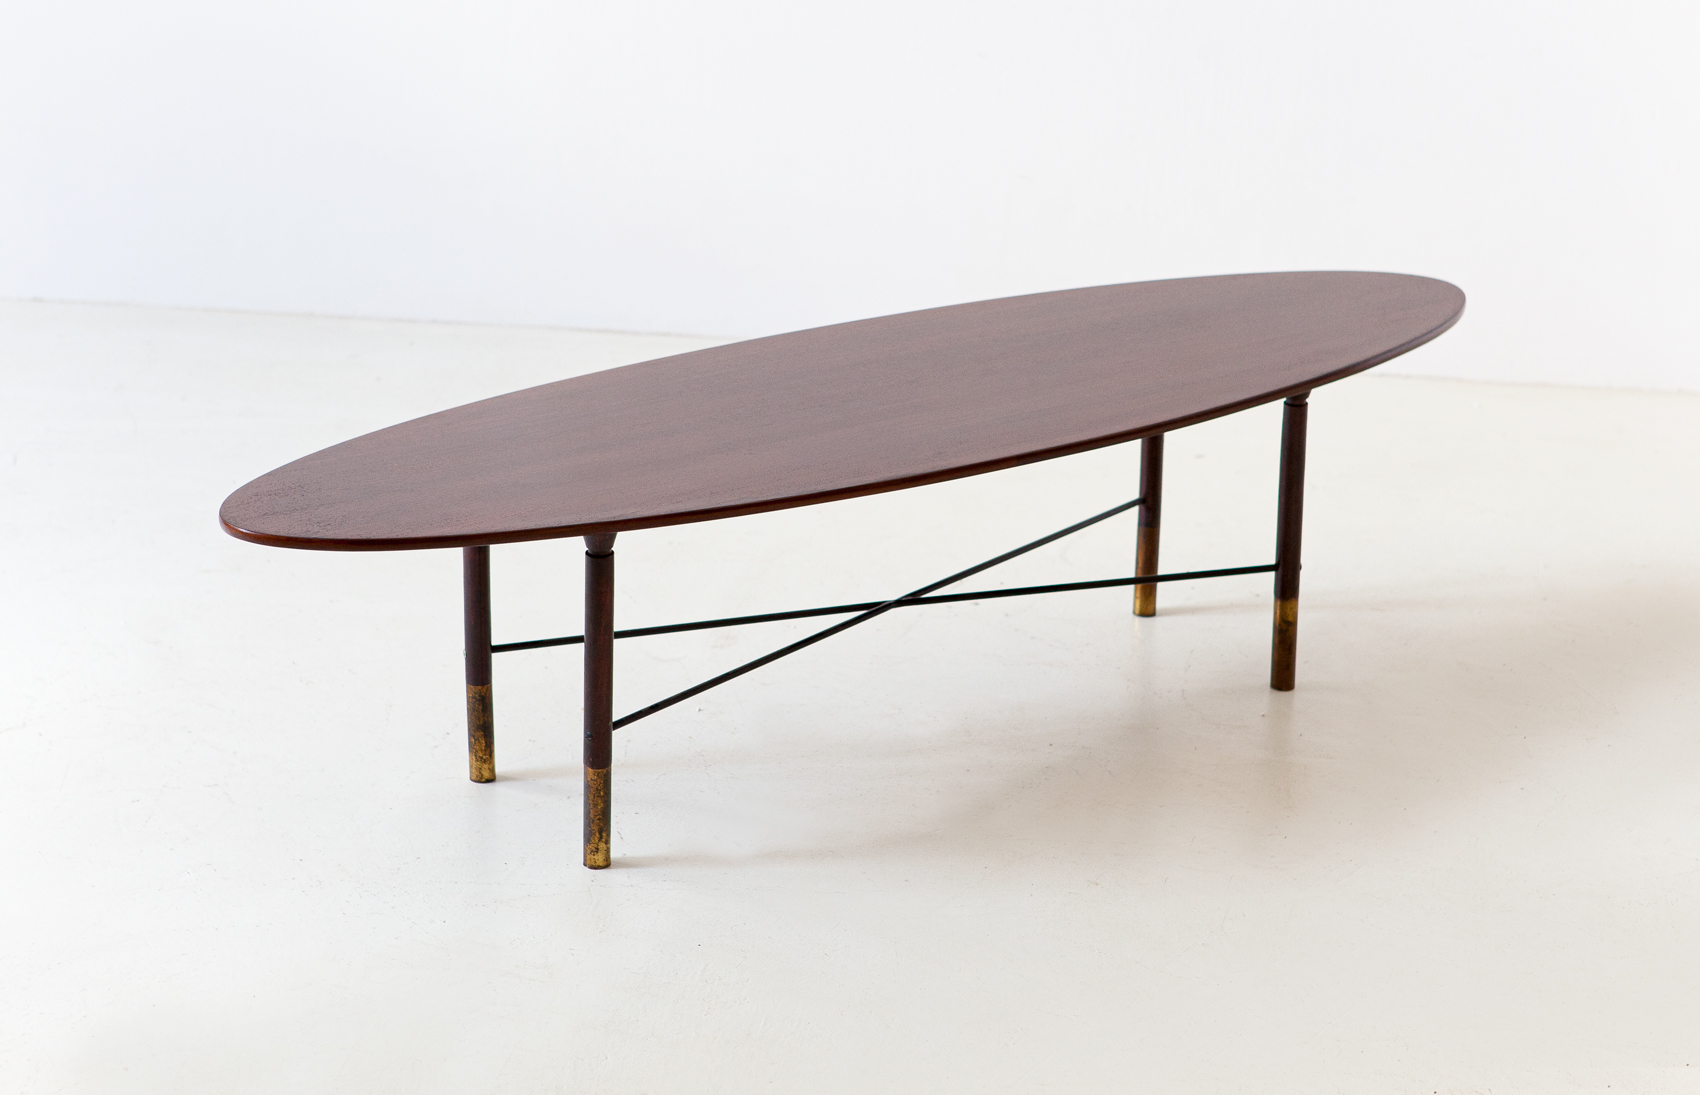 1950s-dark-teak-and-brass-elliptical-coffee-table-3-t90